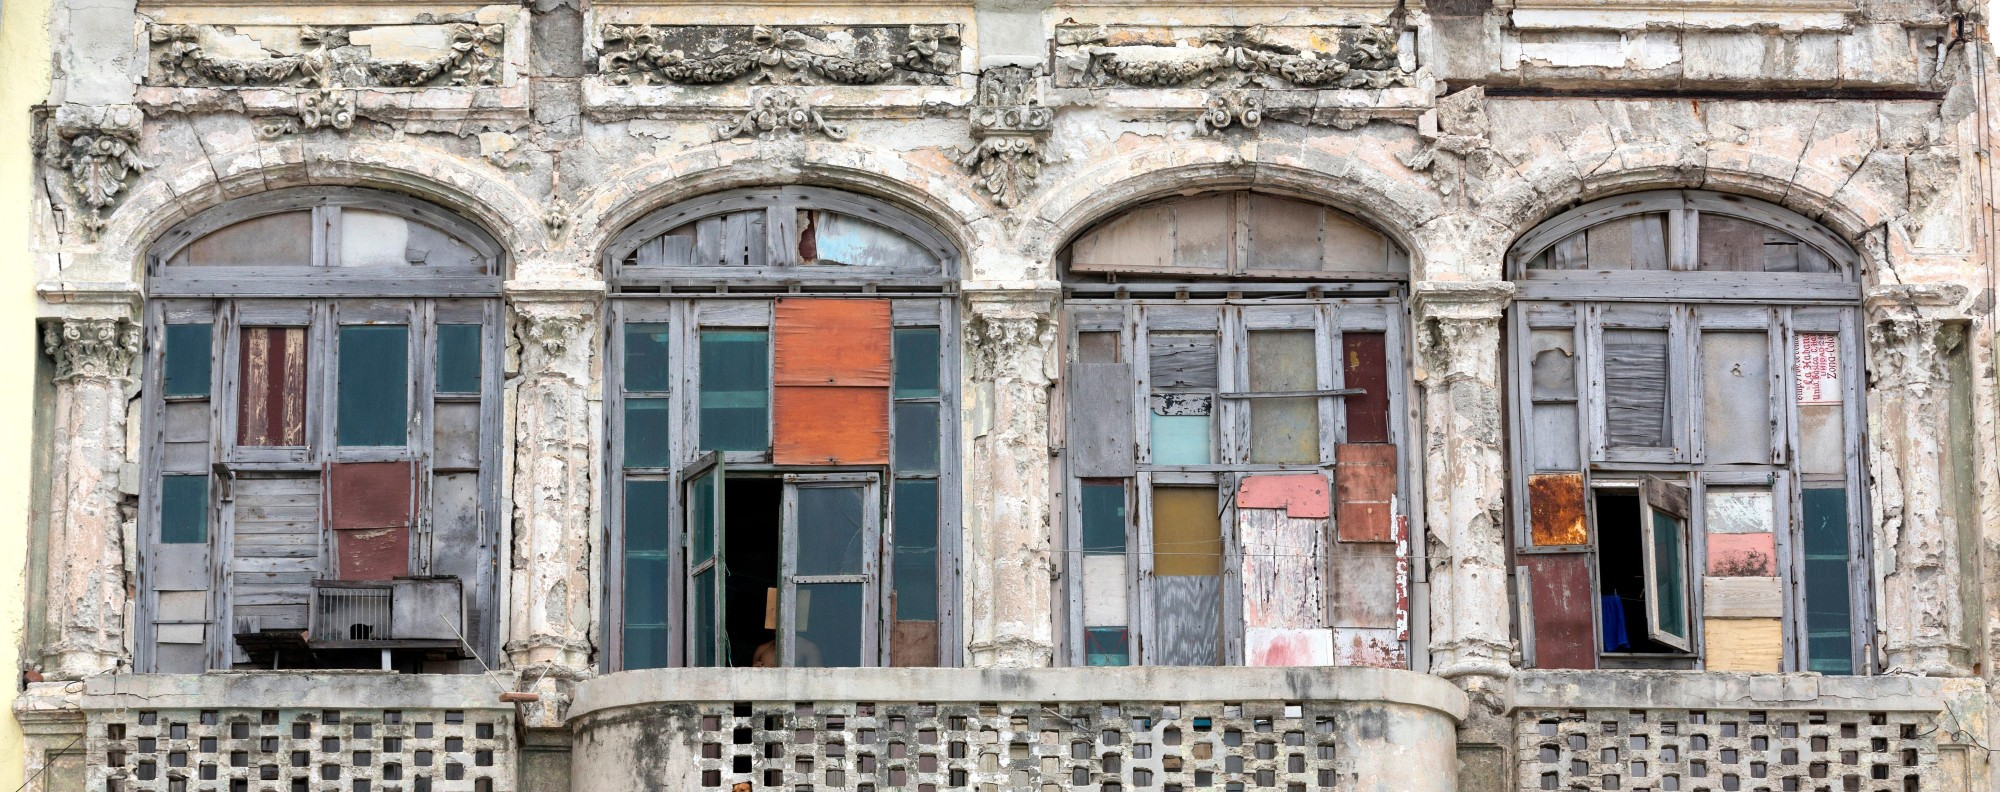 A weather-beaten house front on the Malecon in Havana. Picture: Alamy